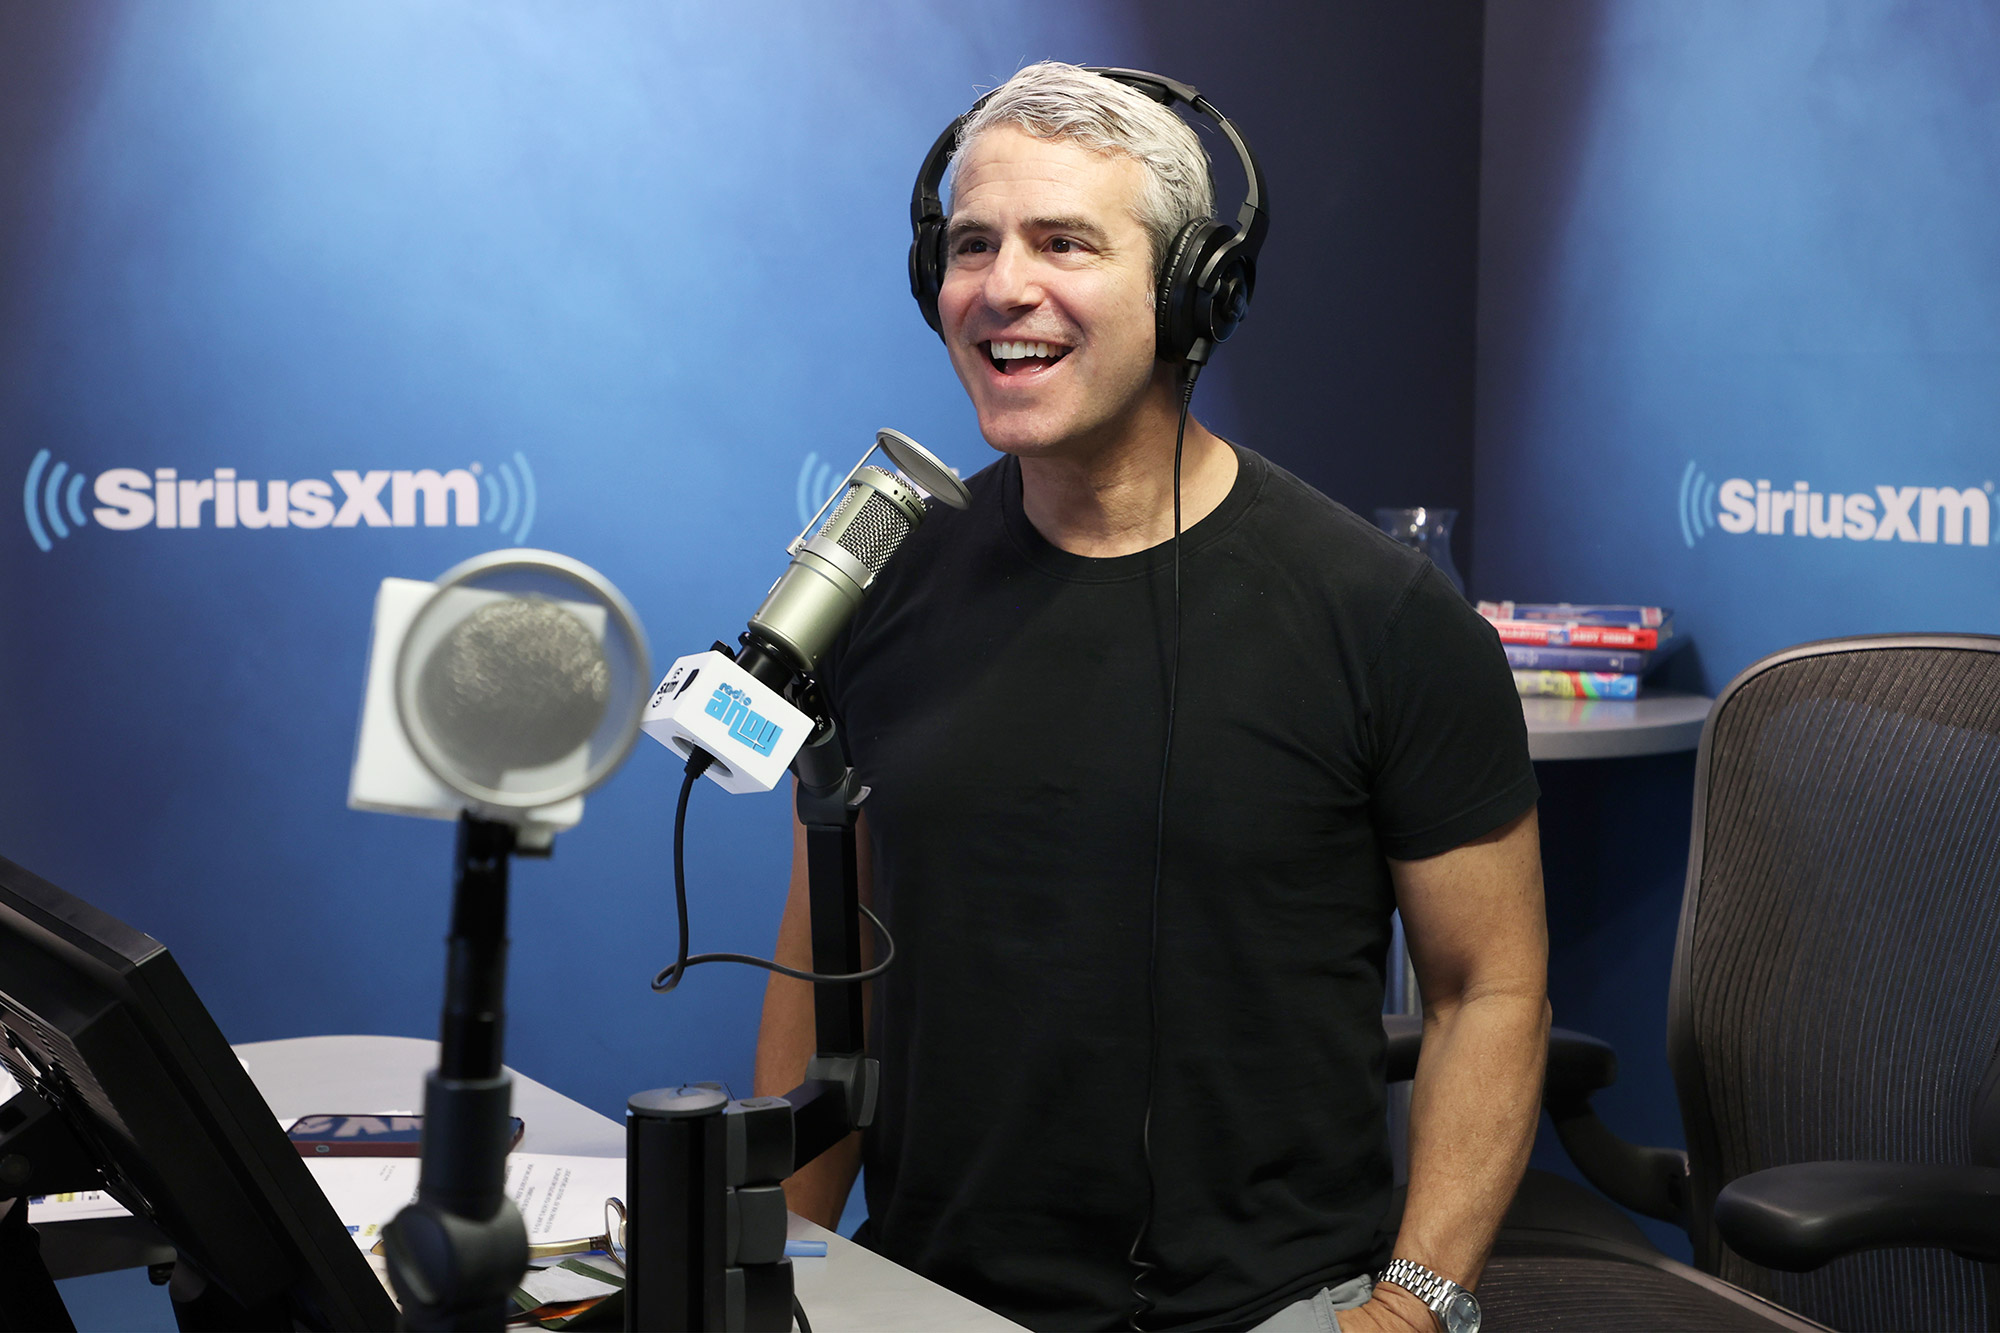 Andy Cohen hosts 'Andy Cohen Live' on SiriusXM's Radio Andy, live from the SiriusXM Studios on July 12, 2021 in New York City